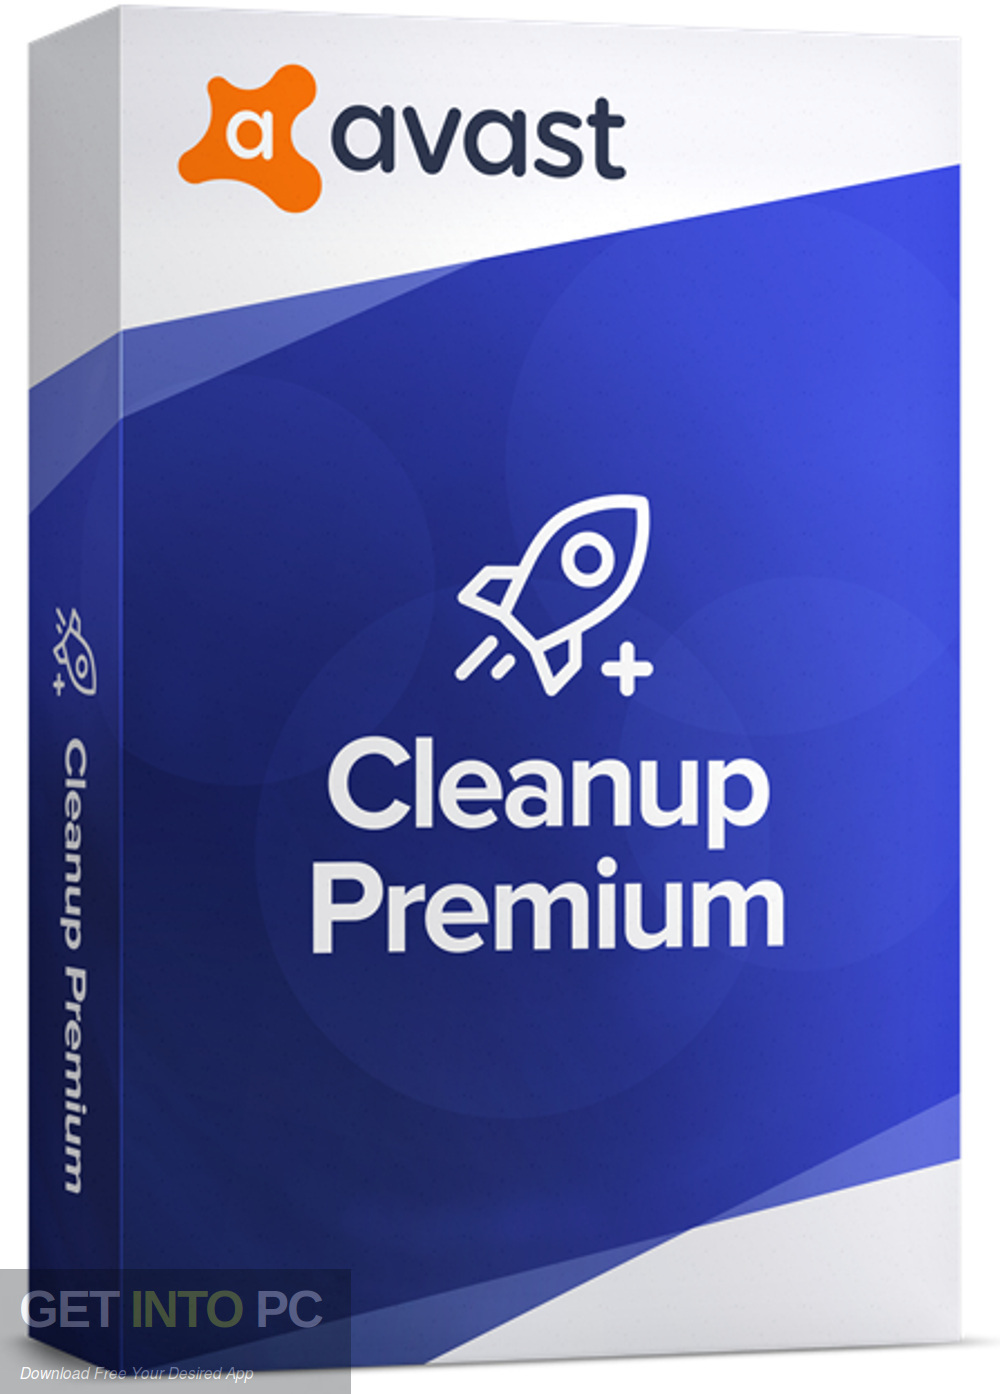 avast cleanup activation key free download